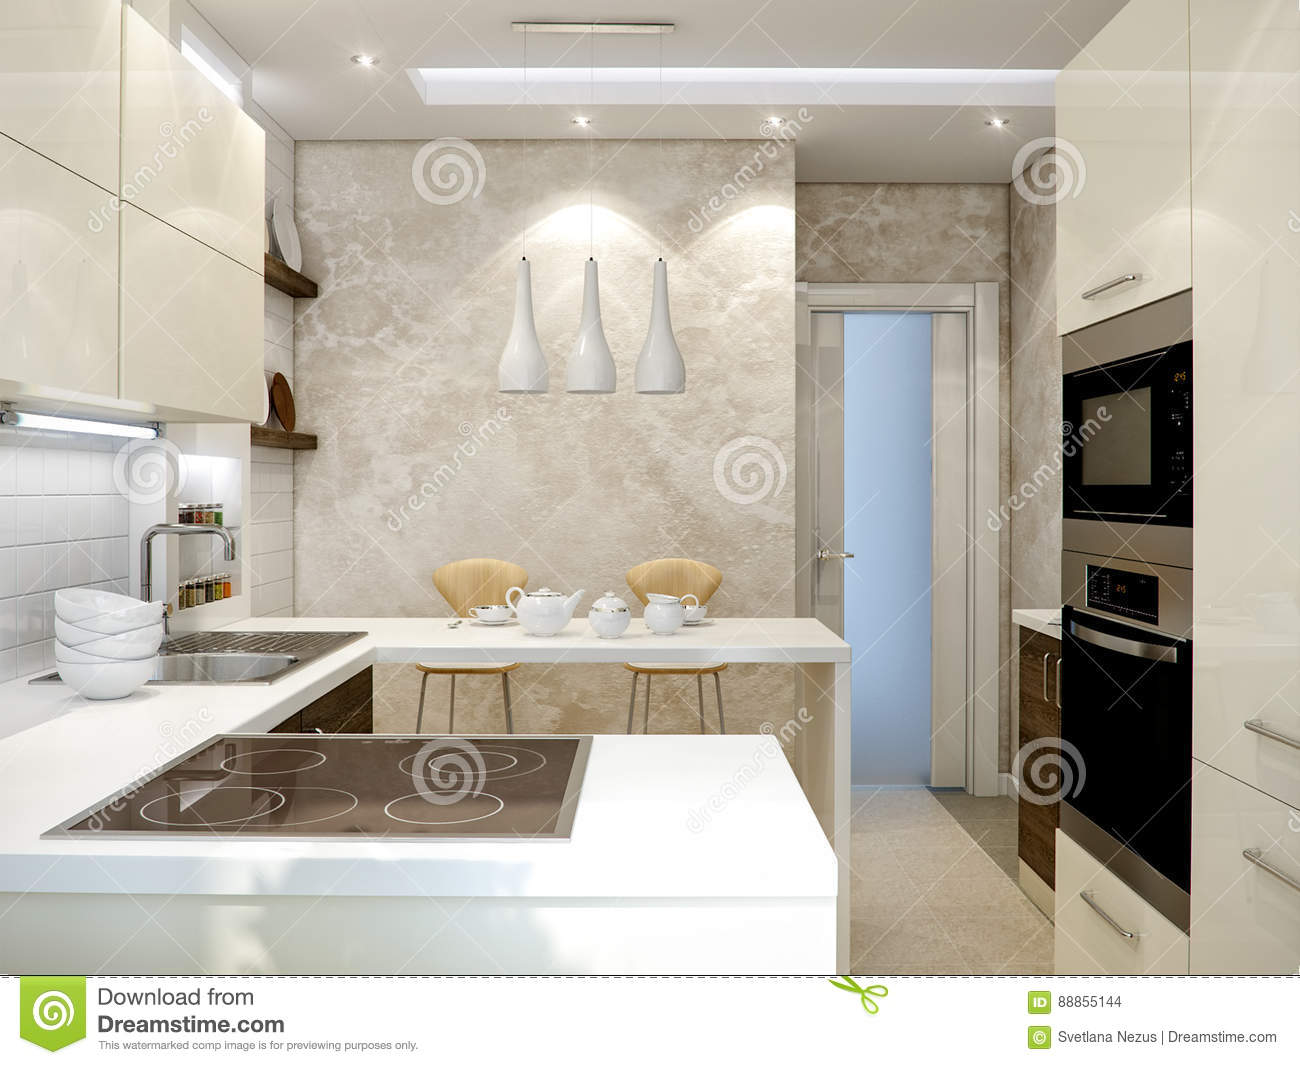 Facades for the kitchen 71